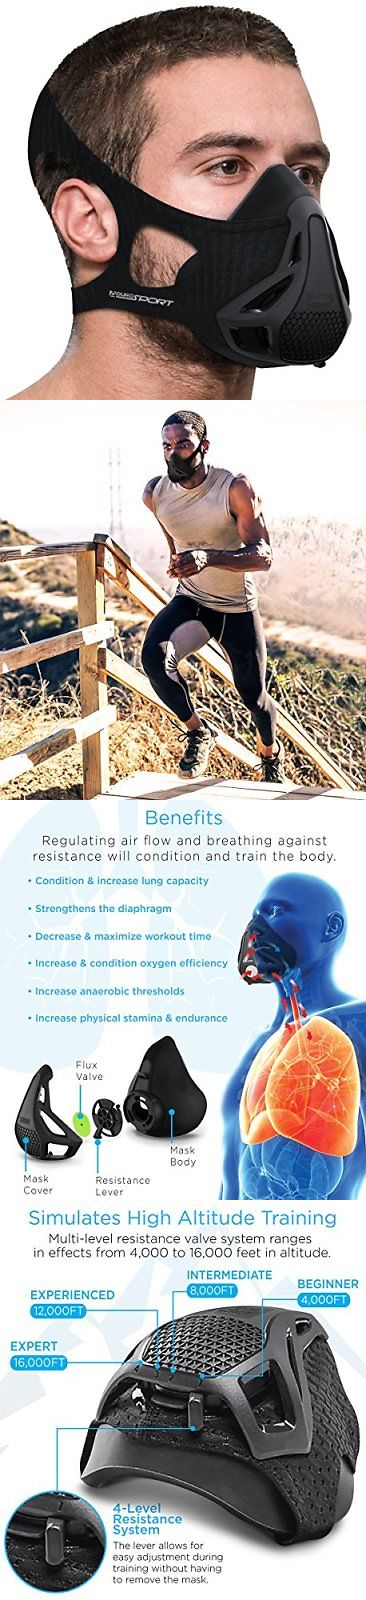 Elevation Training Masks 179787: Aduro Sport Workout Training Mask - For Running Biking And Fitness, With High... -> BUY IT NOW ONLY: $63.96 on eBay!